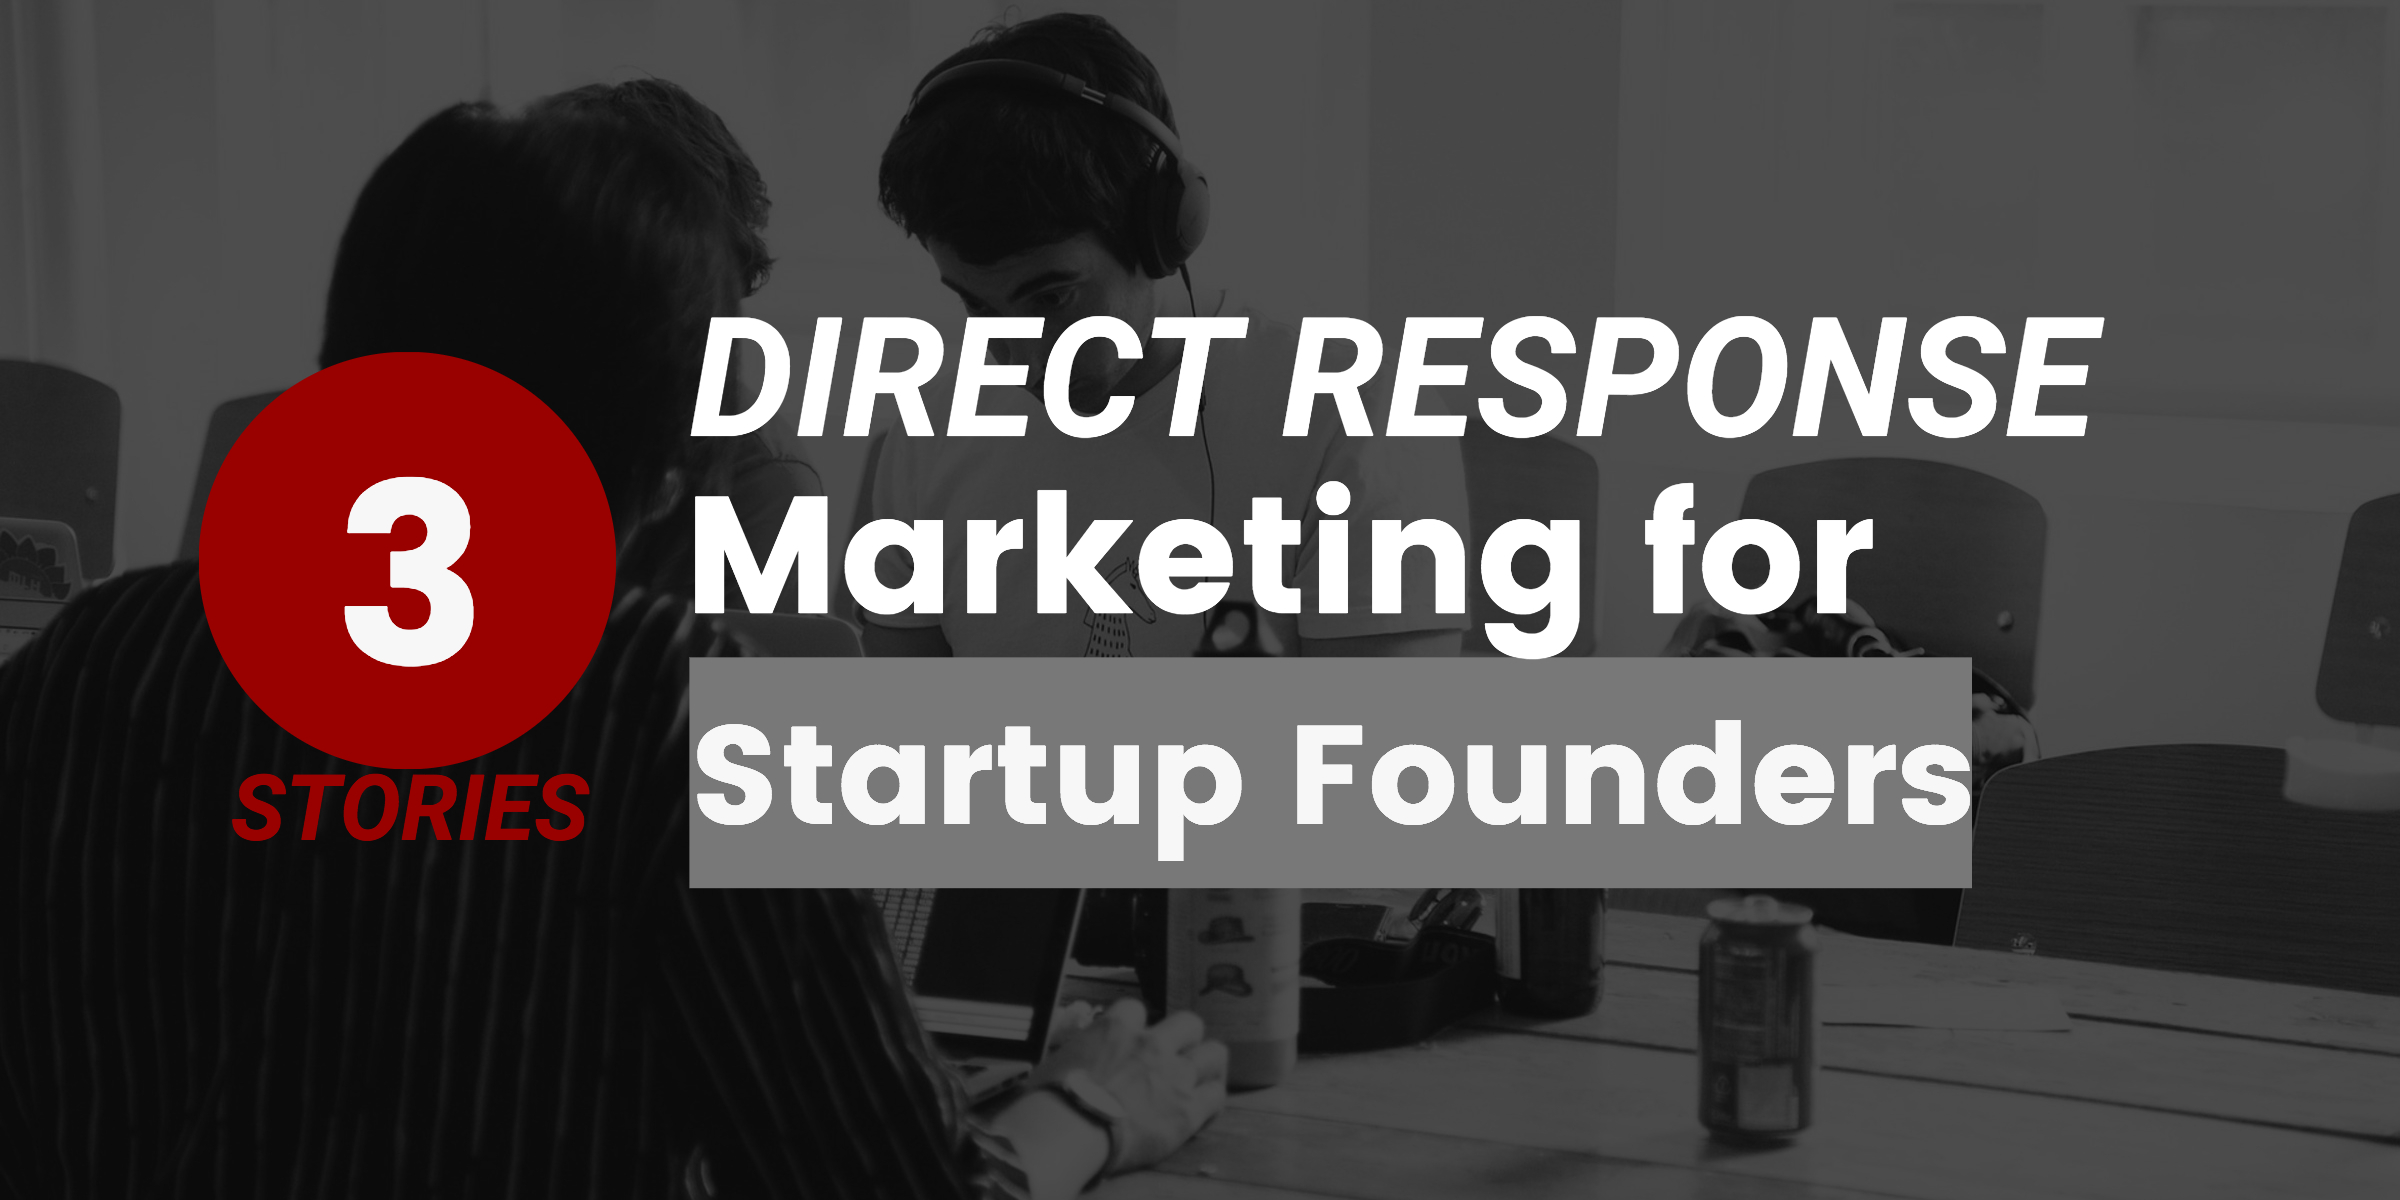 3 Stories Direct Response Marketing for Startups